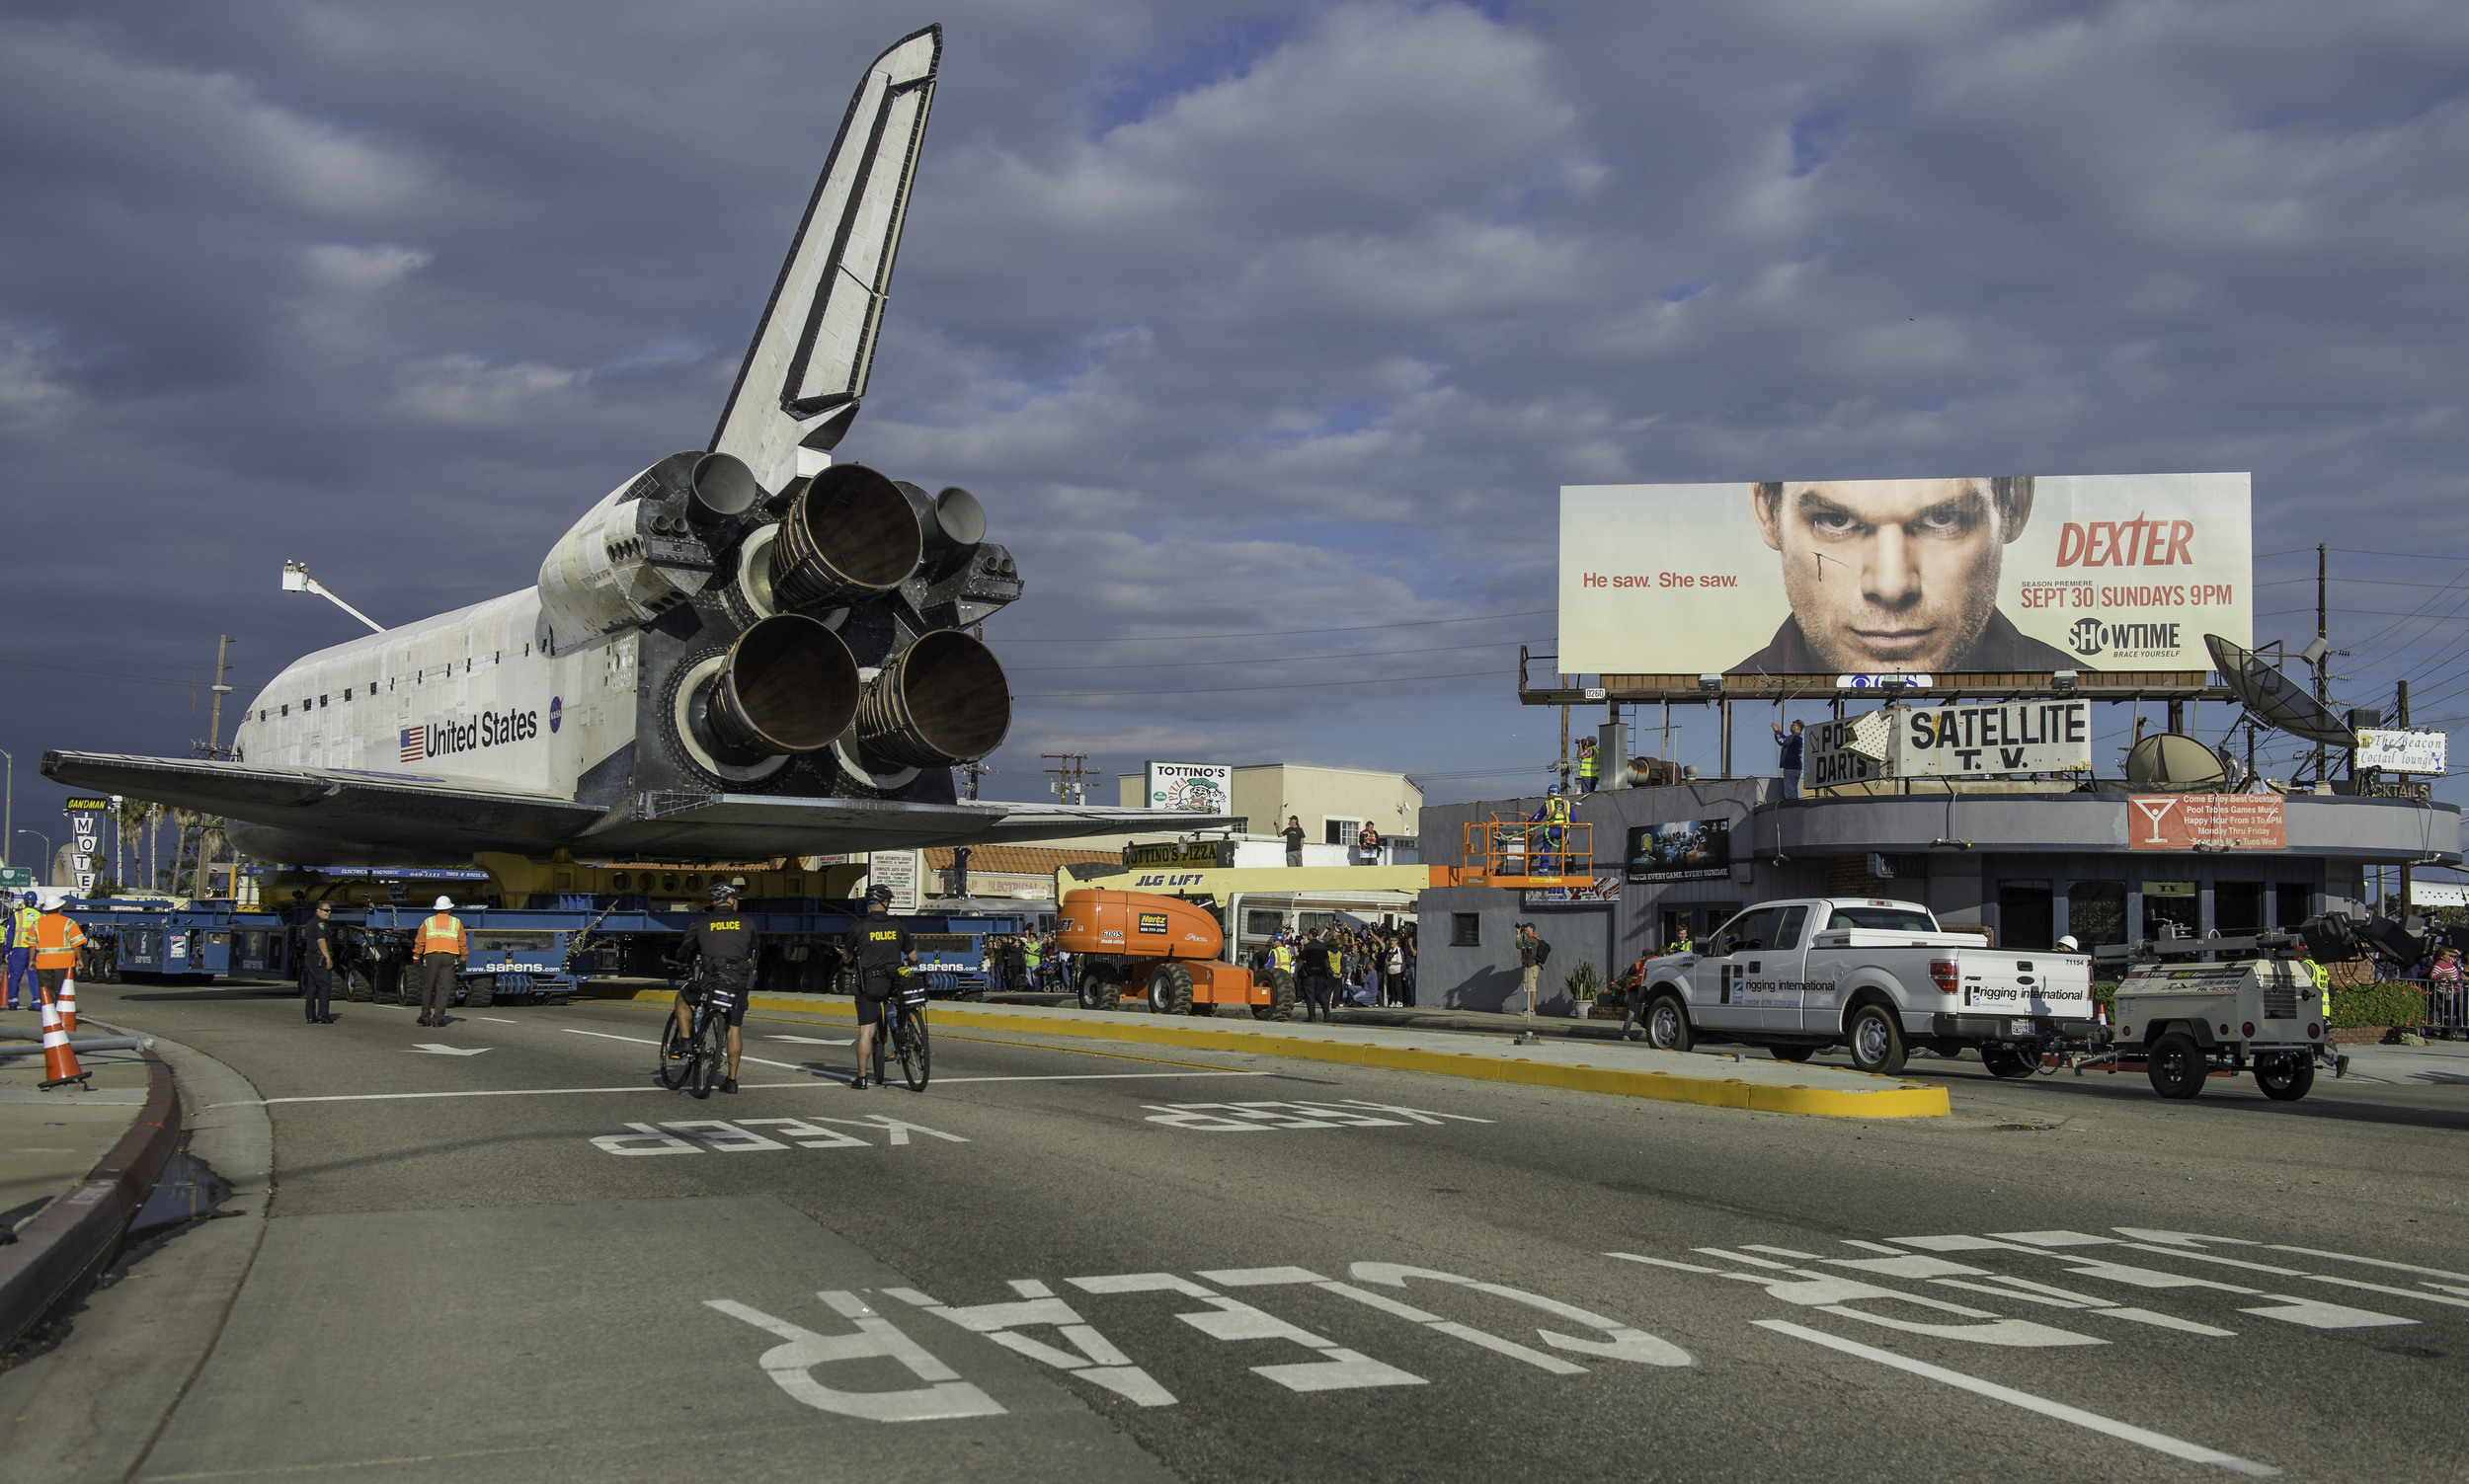 The space shuttle Endeavour is seen as it traverses through Inglewood, California on Friday, Oct. 12, 2012. Endeavour, built as a replacement for space shuttle Challenger, completed 25 missions, spent 299 days in orbit, and orbited Earth 4,671 times while traveling 122,883,151 miles. Beginning Oct. 30, the shuttle will be on display in the CSC's Samuel Oschin Space Shuttle Endeavour Display Pavilion, embarking on its new mission to commemorate past achievements in space and educate and inspire future generations of explorers. (NASA/Carla Cioffi)